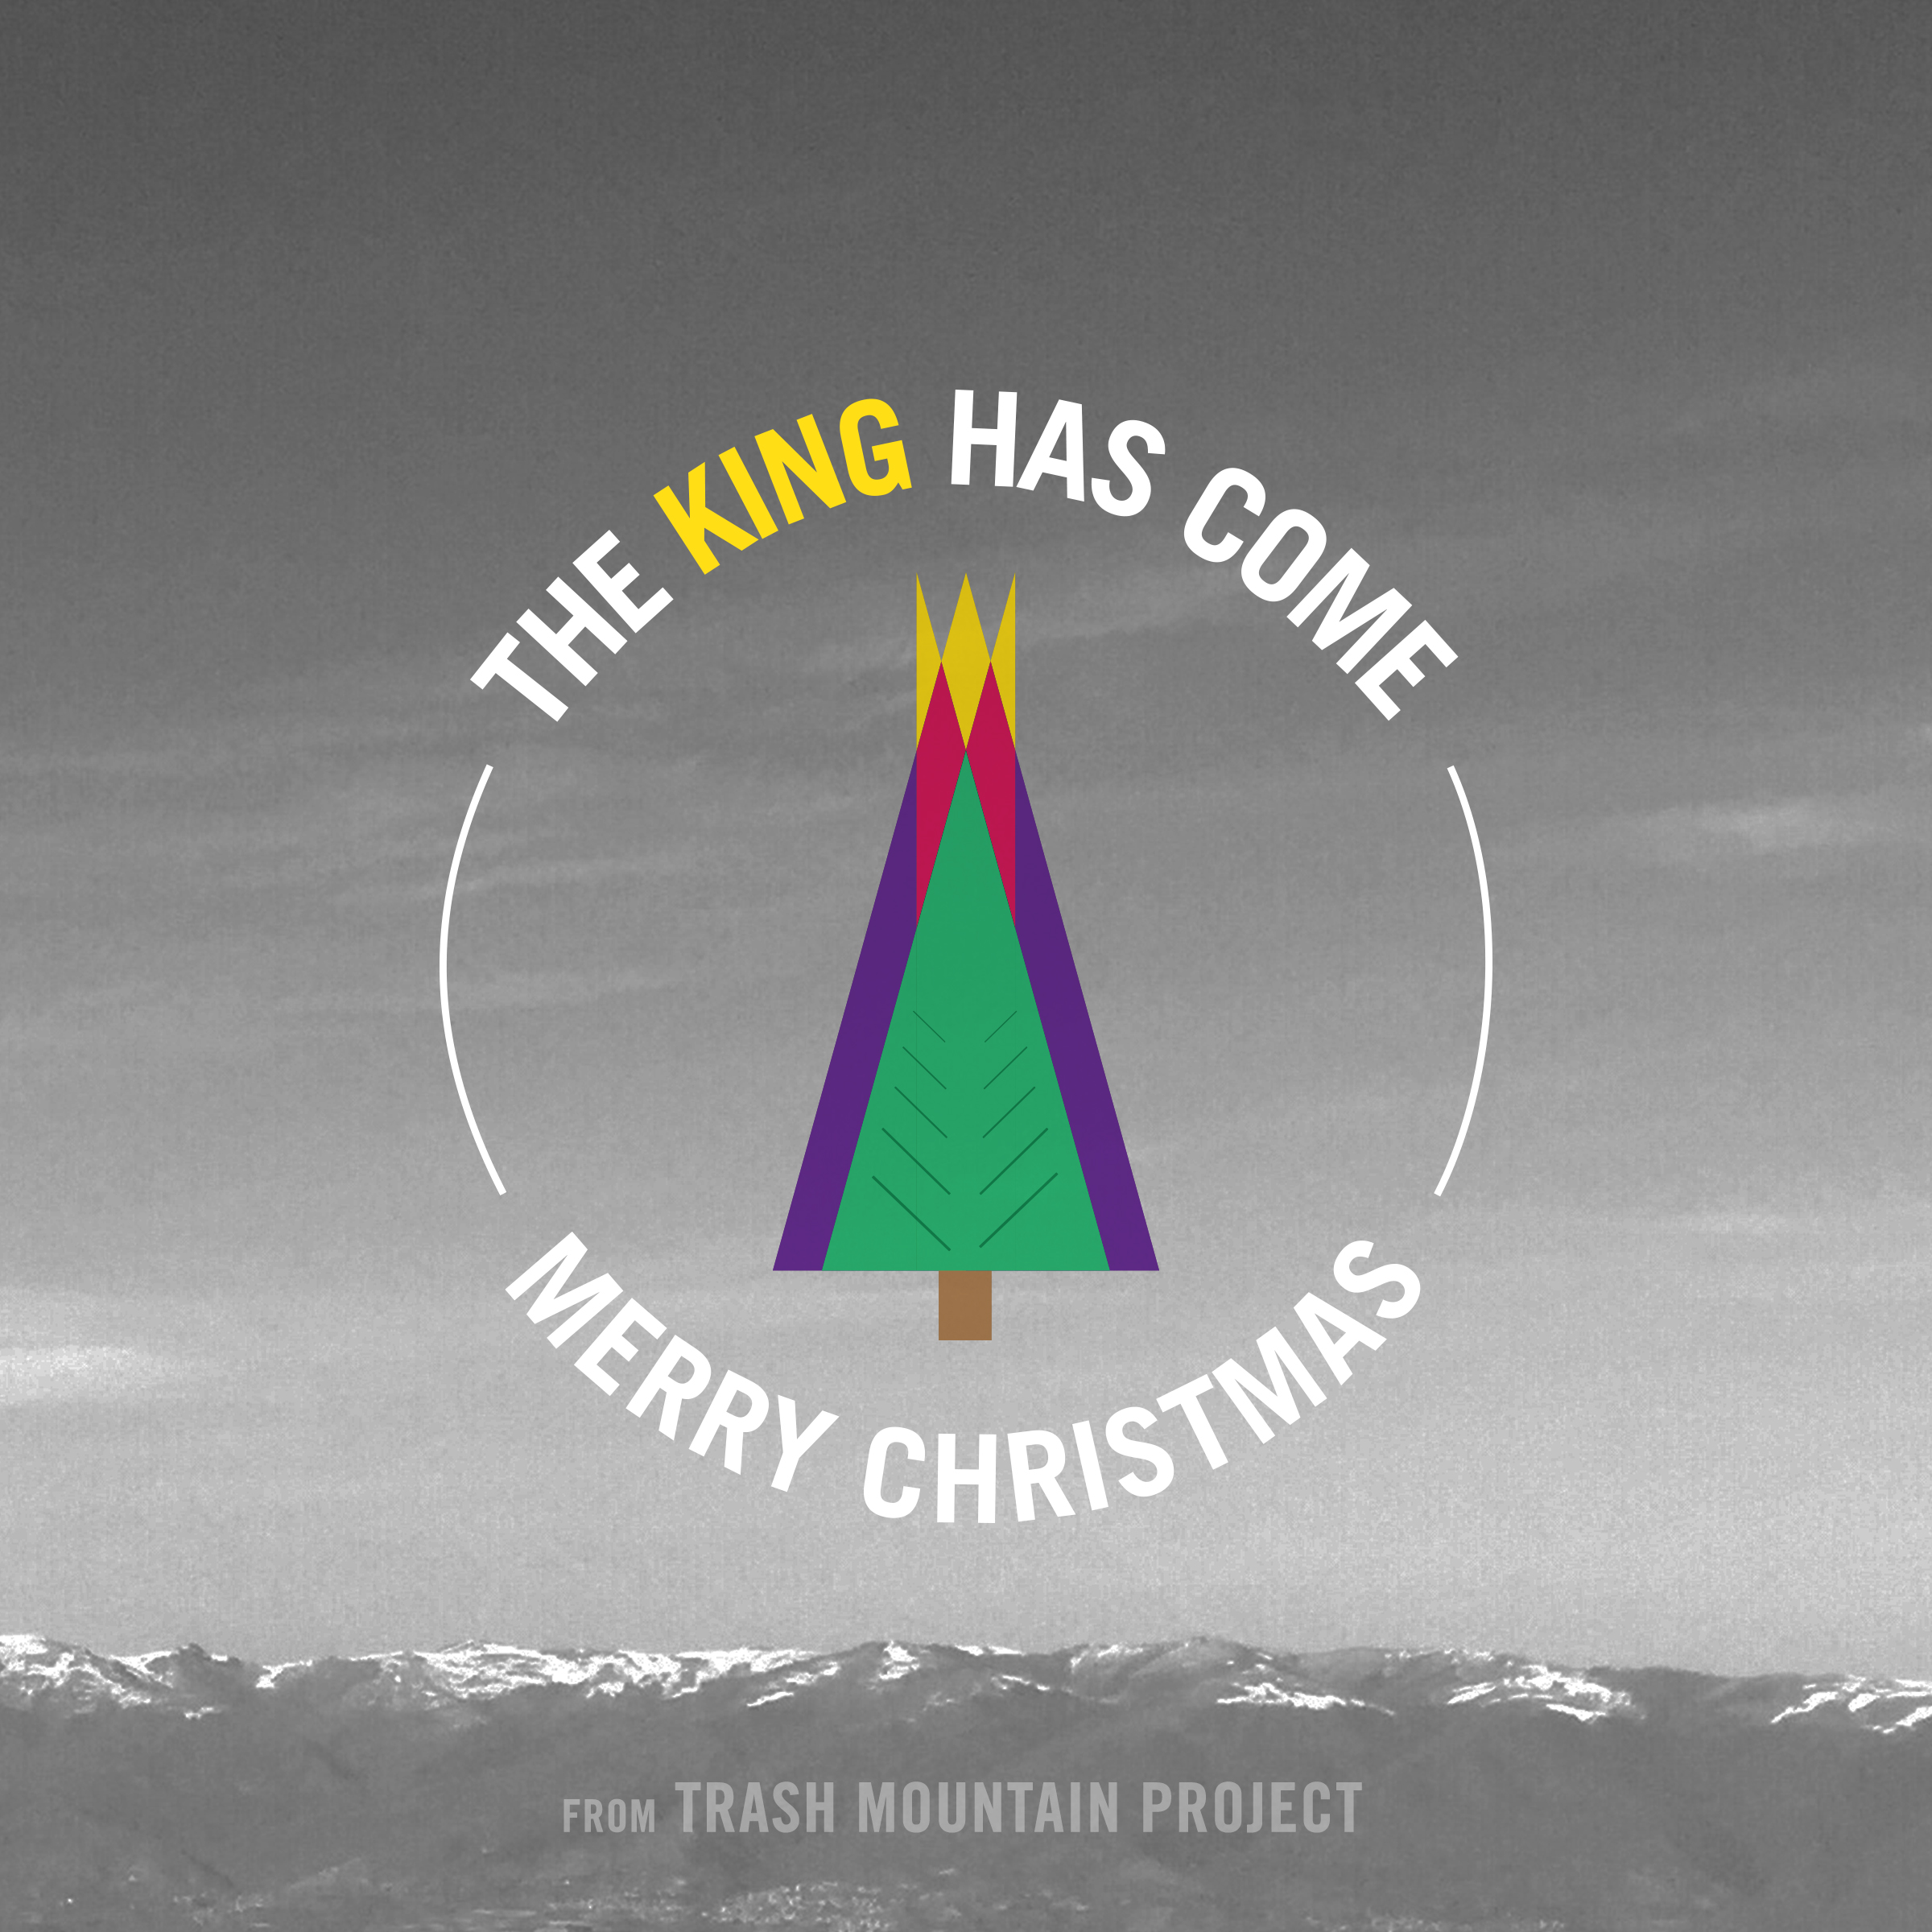 Instagram Christmas graphic for Trash Mountain Project